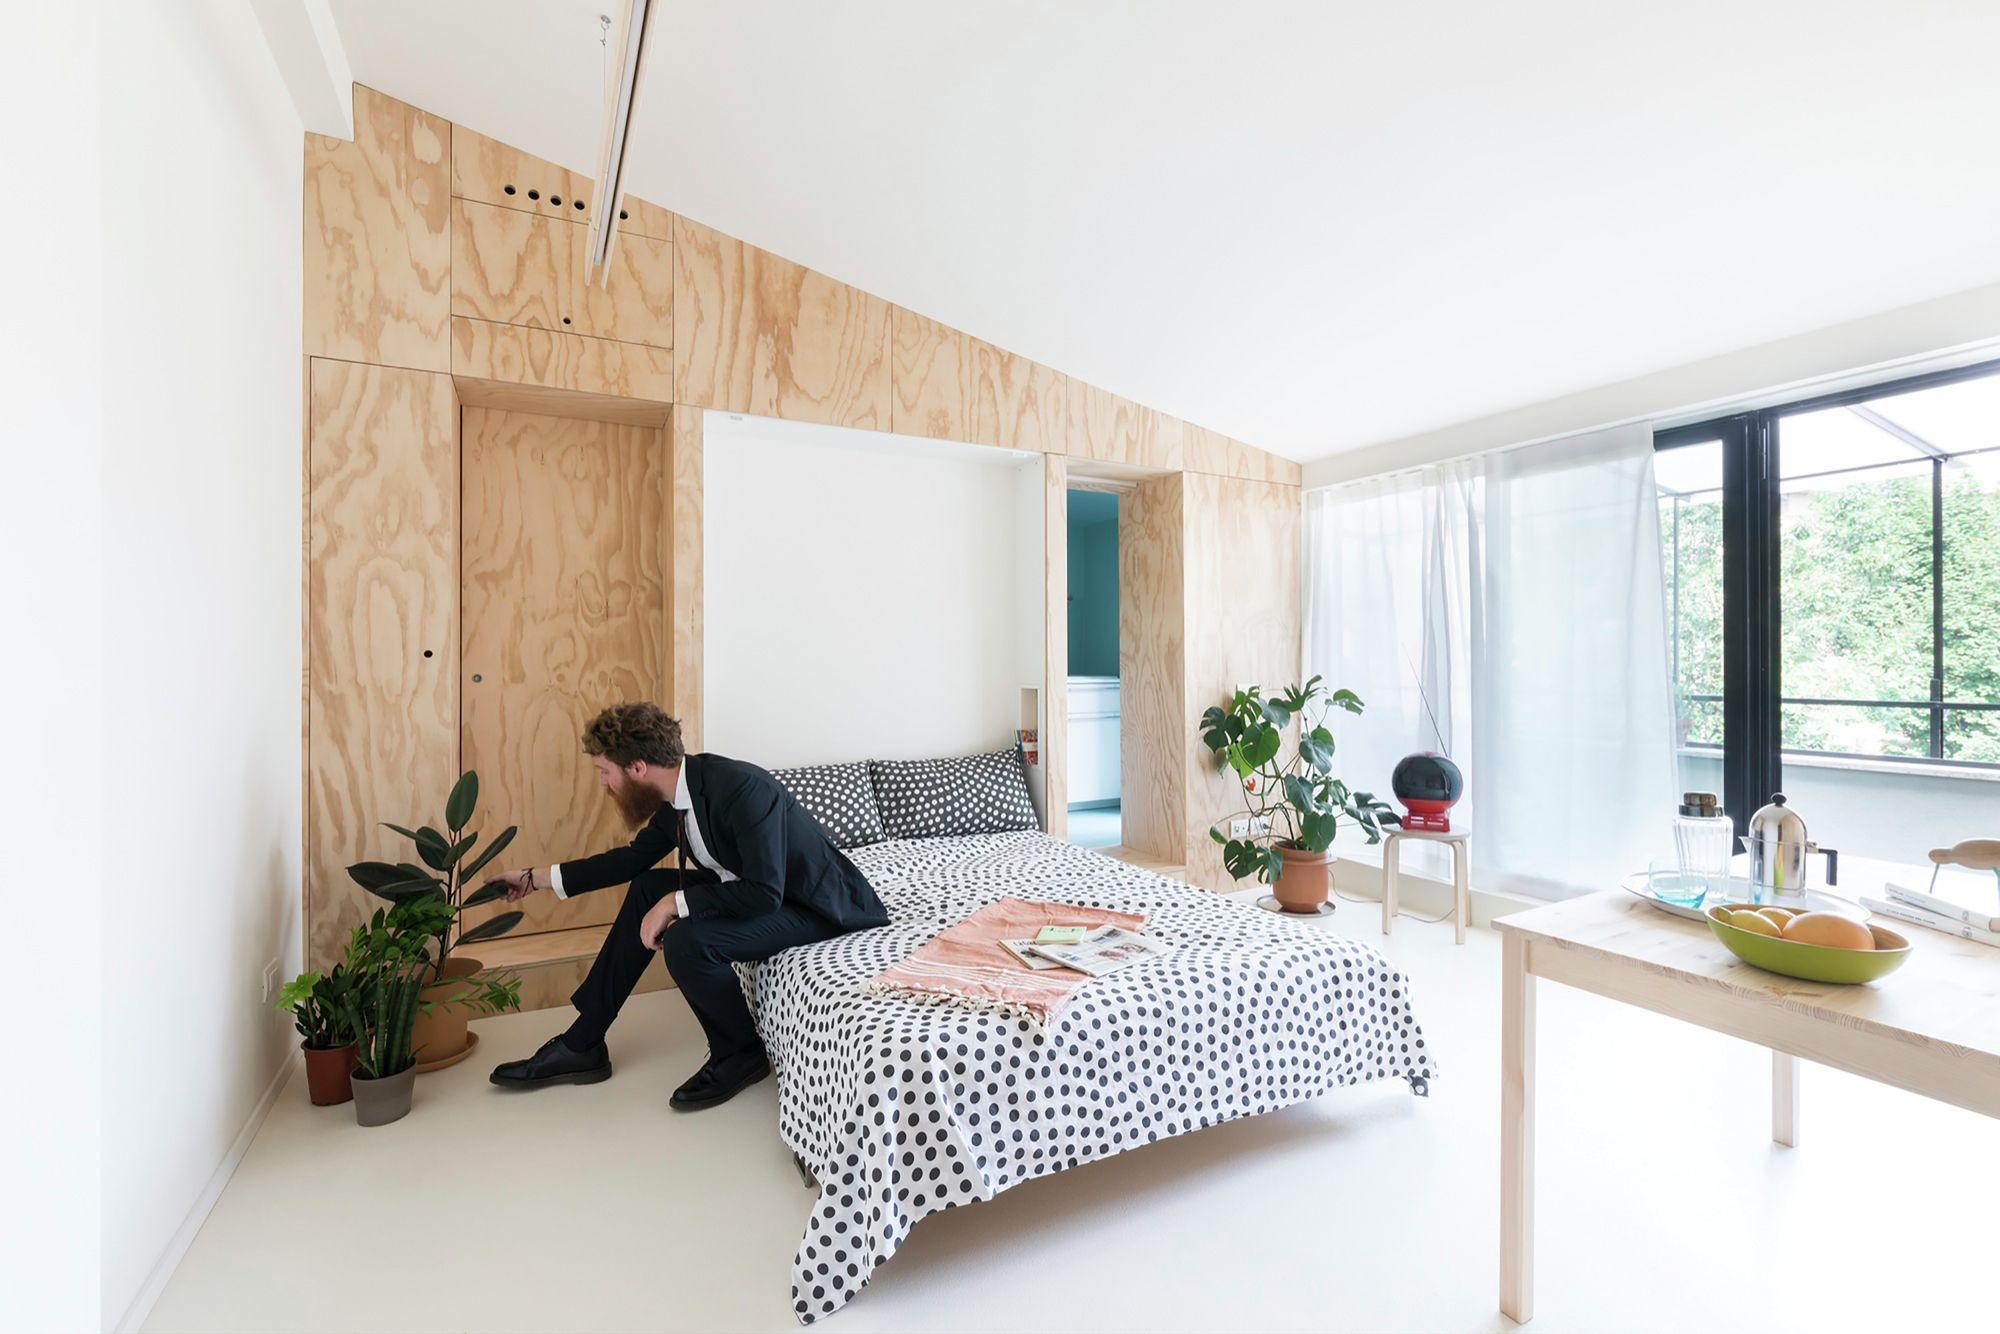 Pin On Living Small Italy small bedroom apartment